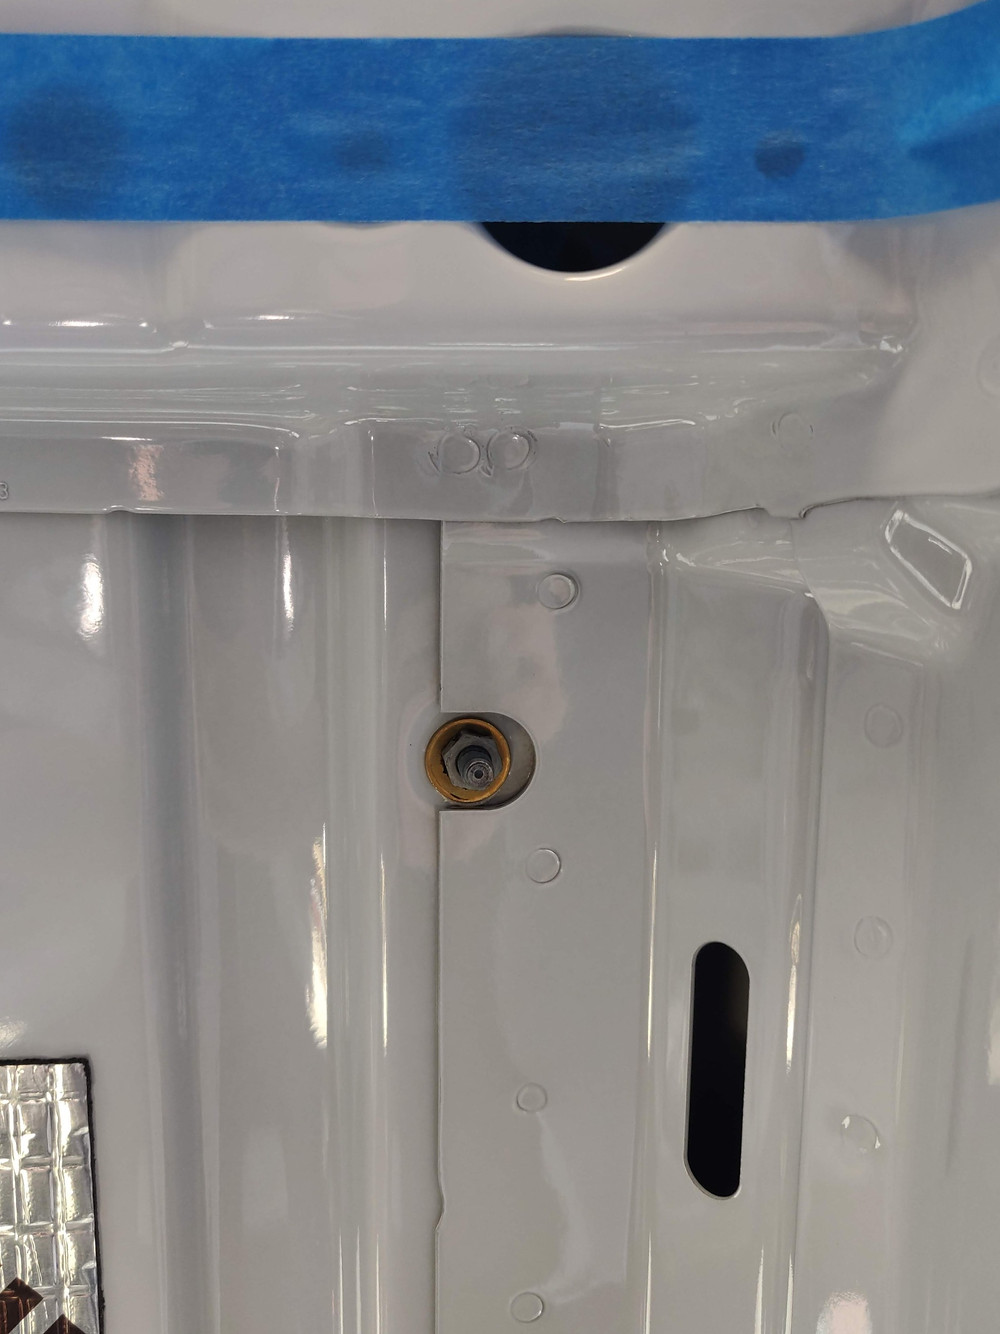 The inside of the Sprinter roof with the screw from the roof rails sticking through.